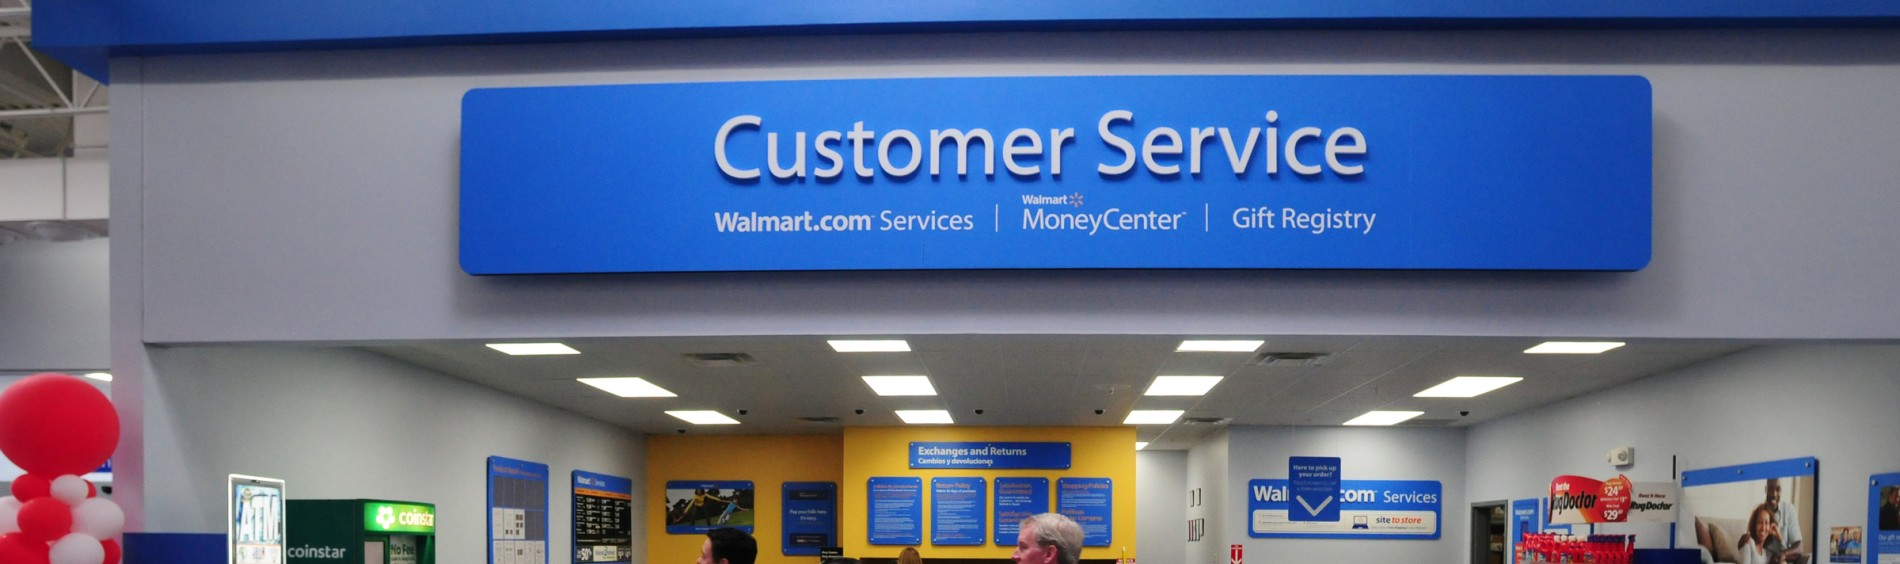 "The Walmart Customer Service center is pictured with three customers walking in front of the area's opening. Walmart banners and signs adorn the walls of the customer service center. A large, blue sign above the area reads ""Customer Service. Walmart.com Services 